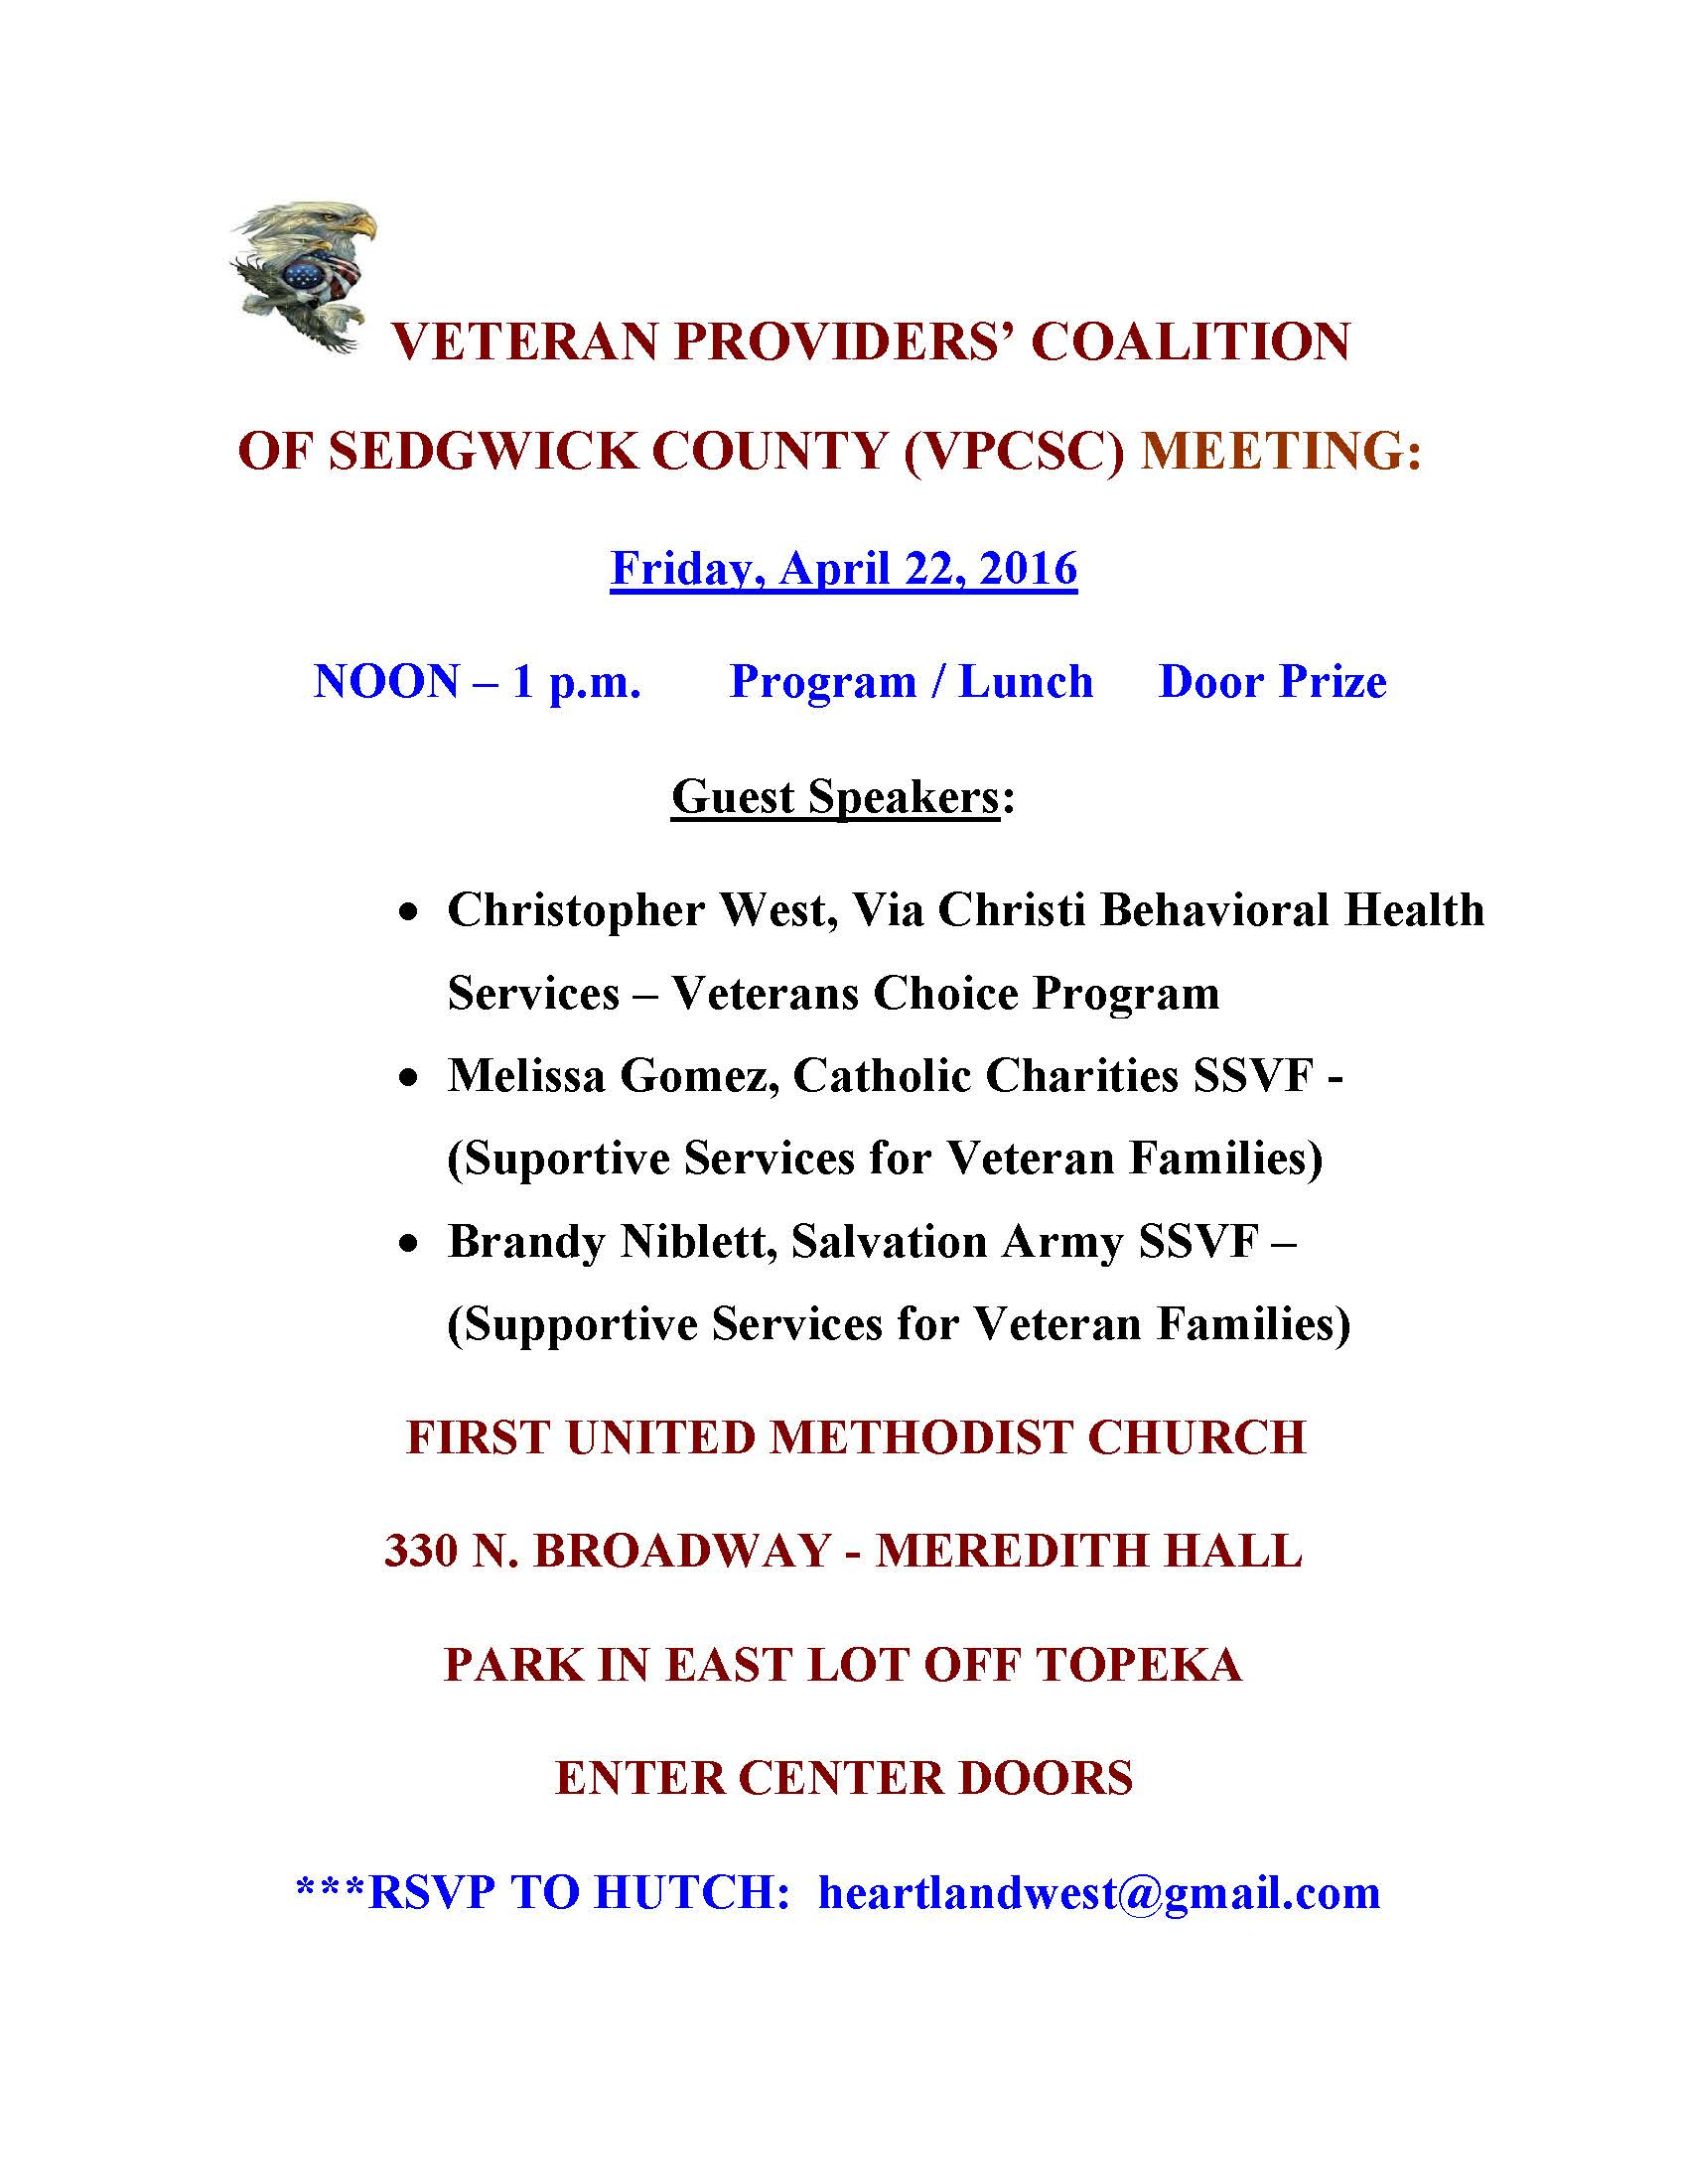 VPCSC Mtg Invitation 4-22-16